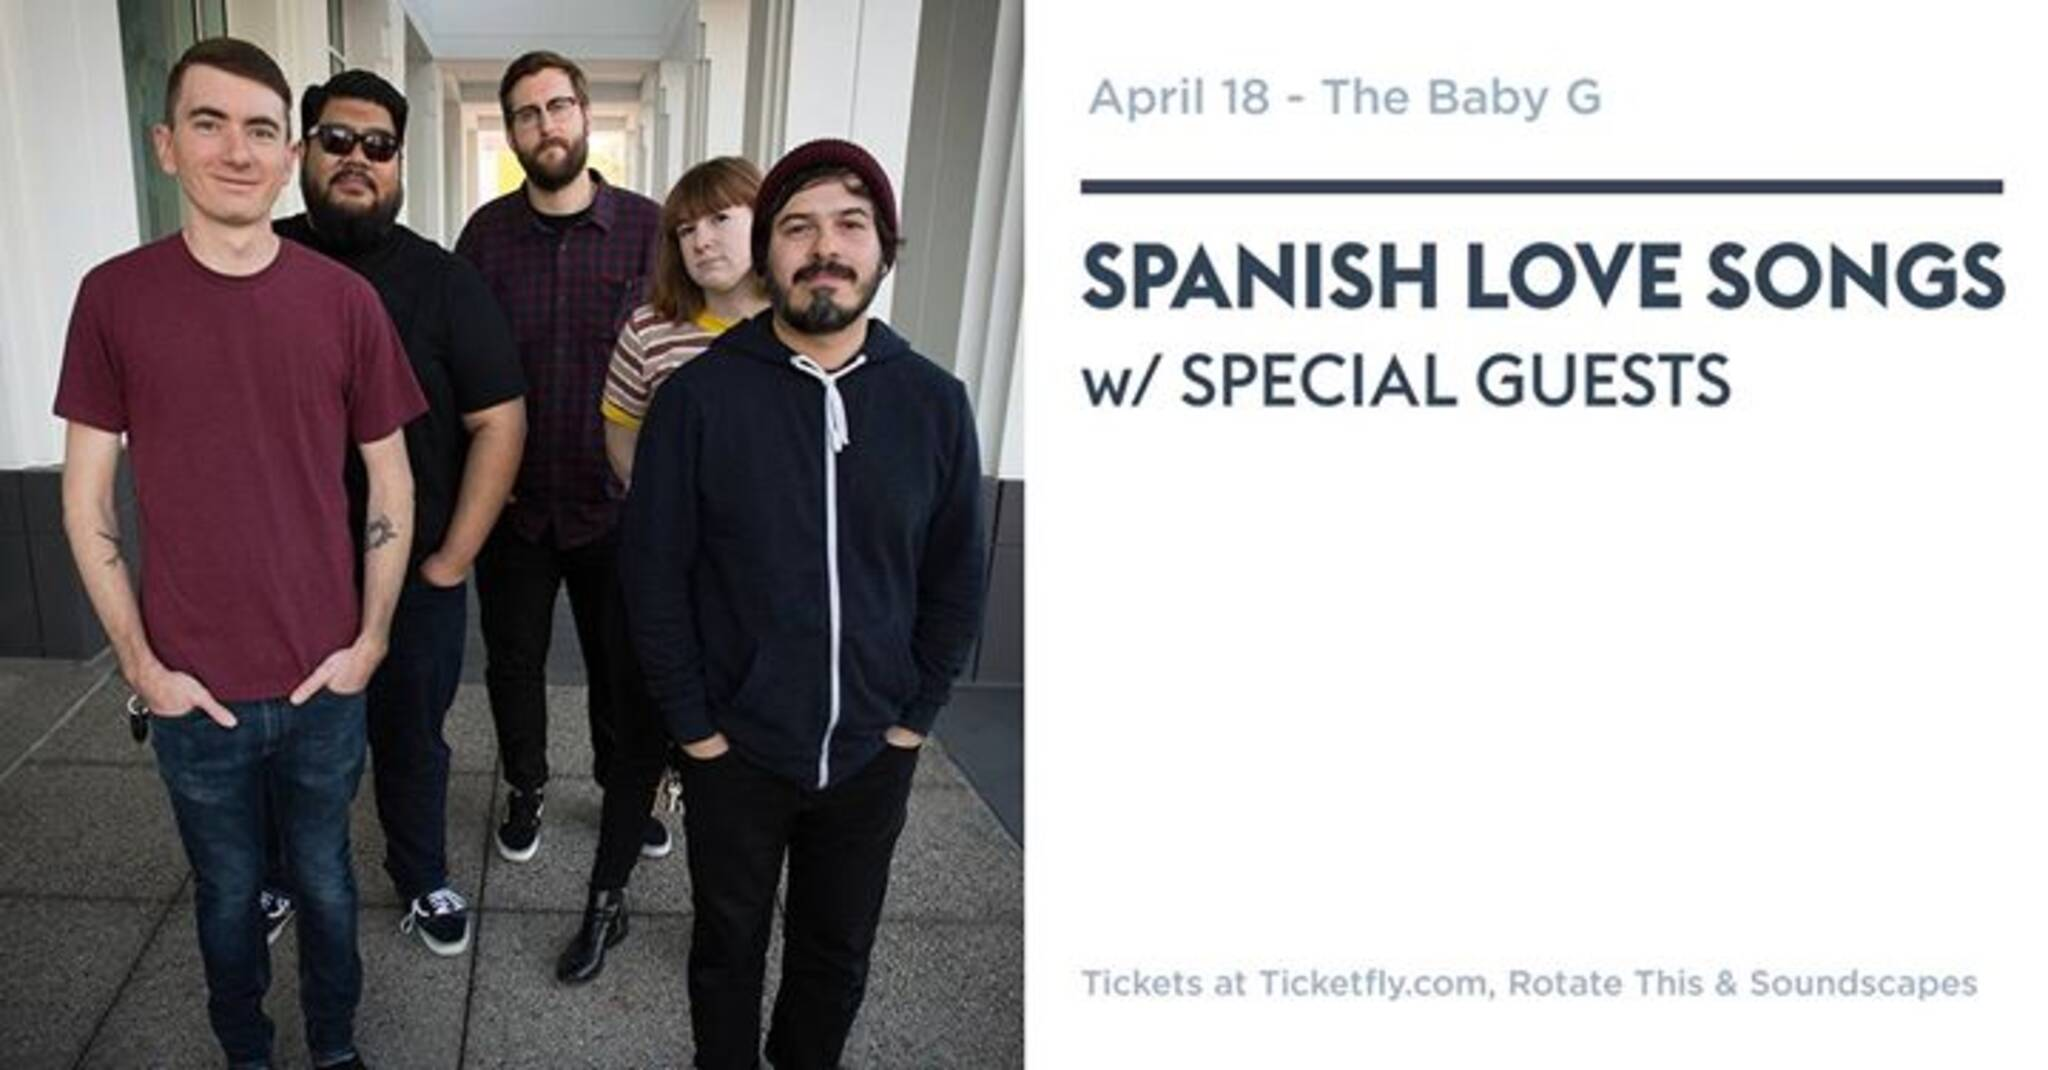 Spanish Love Songs - April 18 - The Baby G